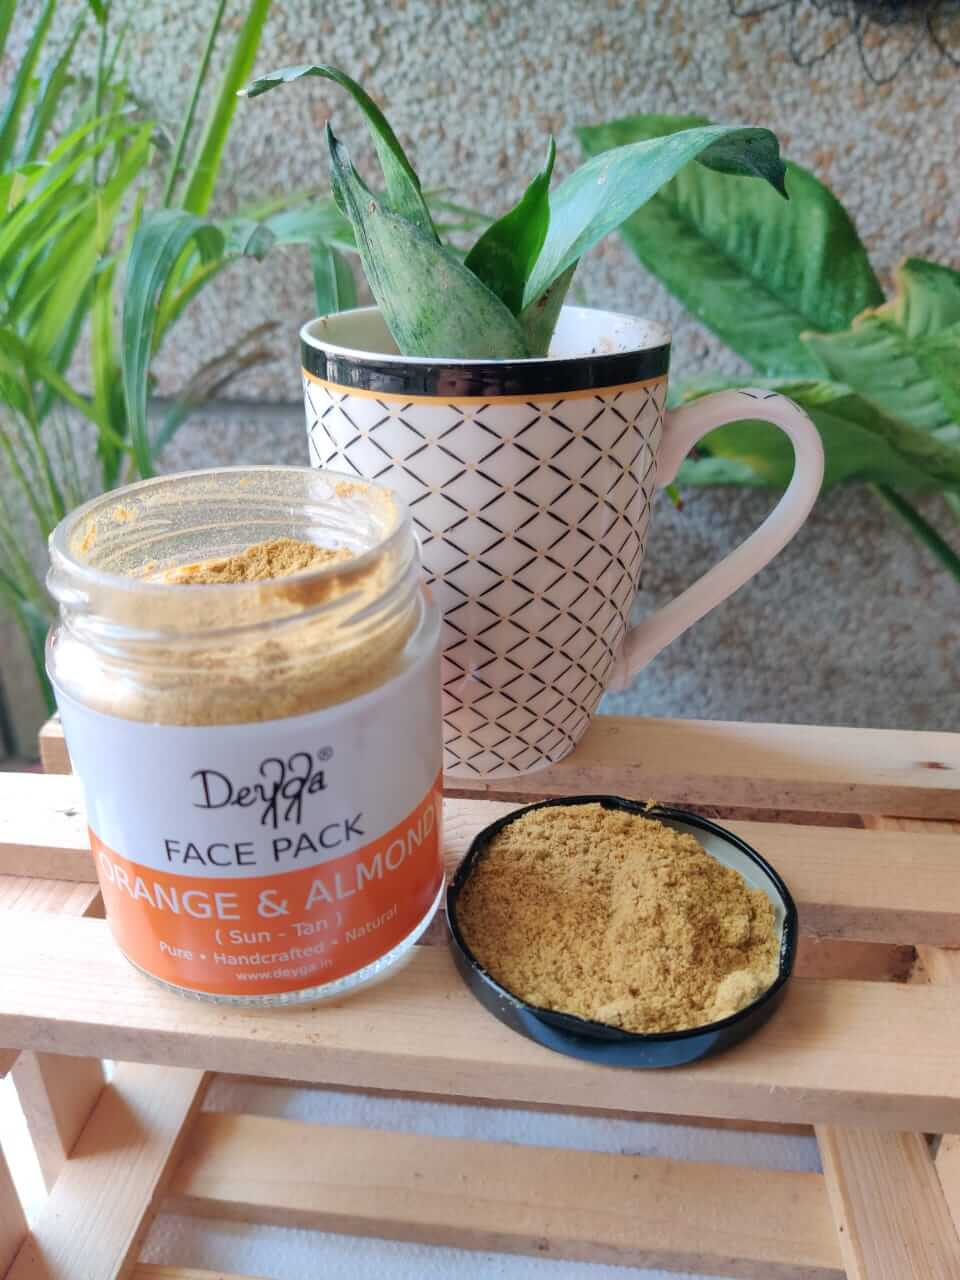 Here, I am sharing my experience of using Deyga Organic Skincare Products. Deyga is an organic skin and haircare brand based at Tamil Nadu, India.